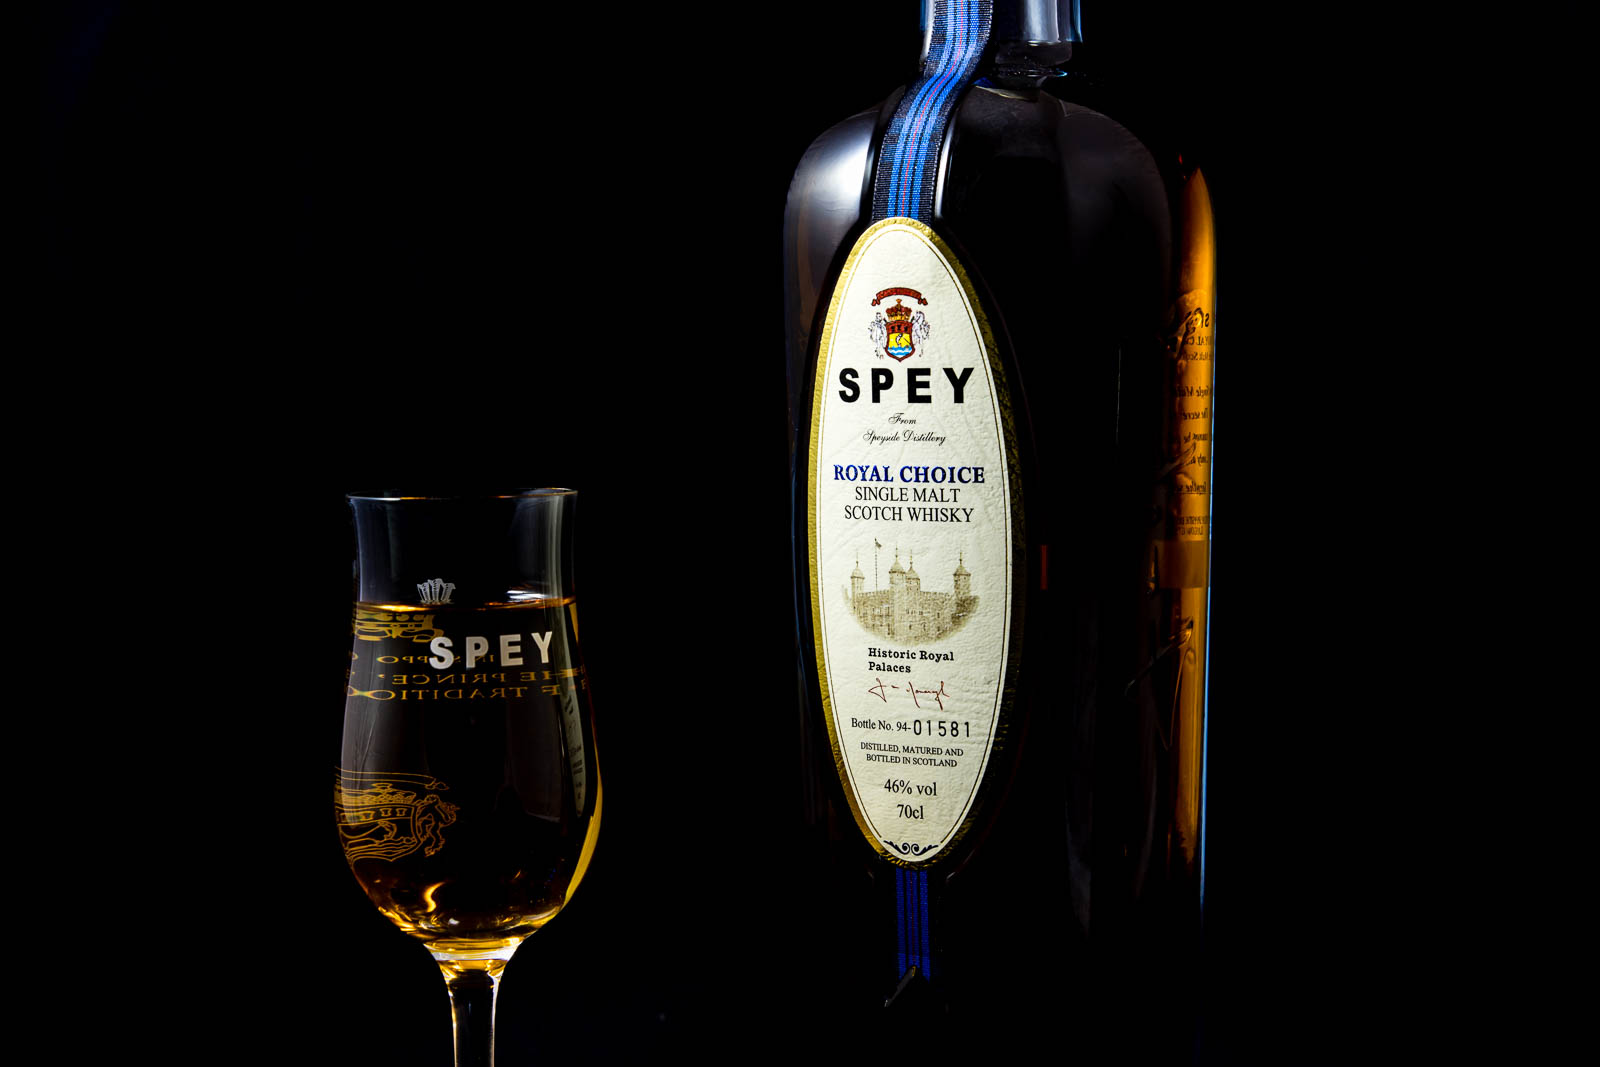 Spey Whisky Royal Choice